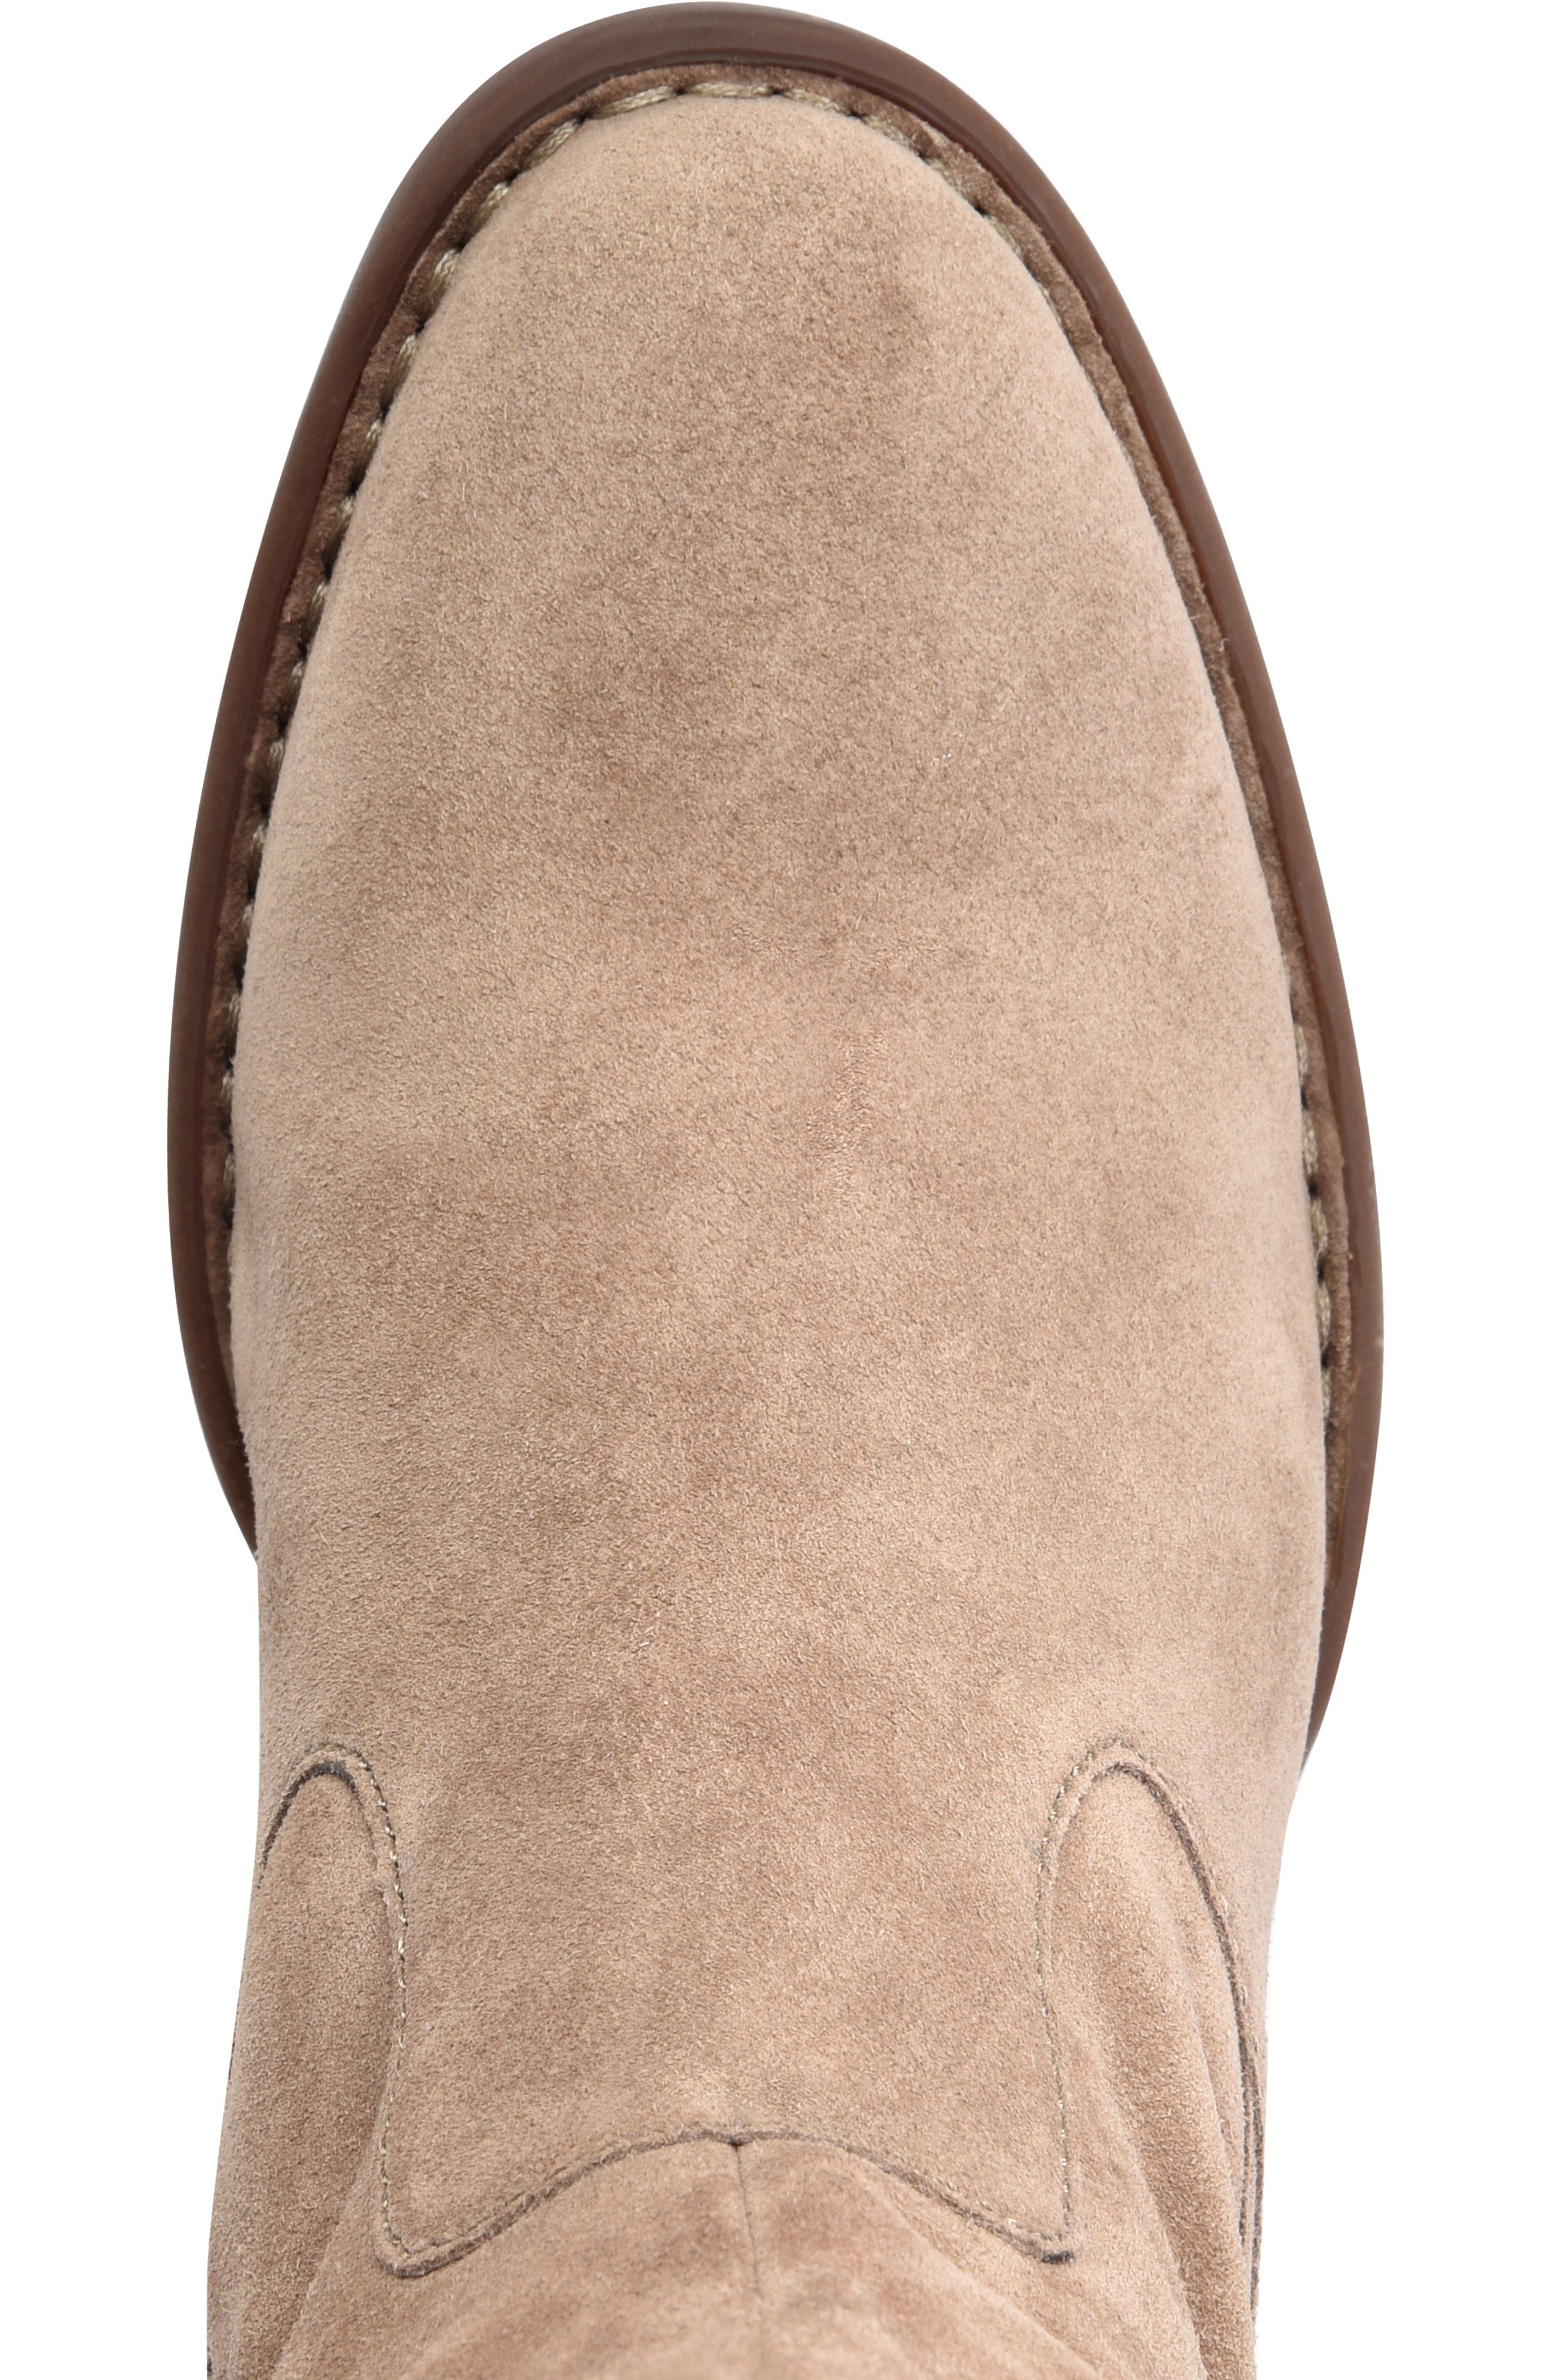 Cricket Over the Knee Boot,                             Alternate thumbnail 5, color,                             TAUPE SUEDE